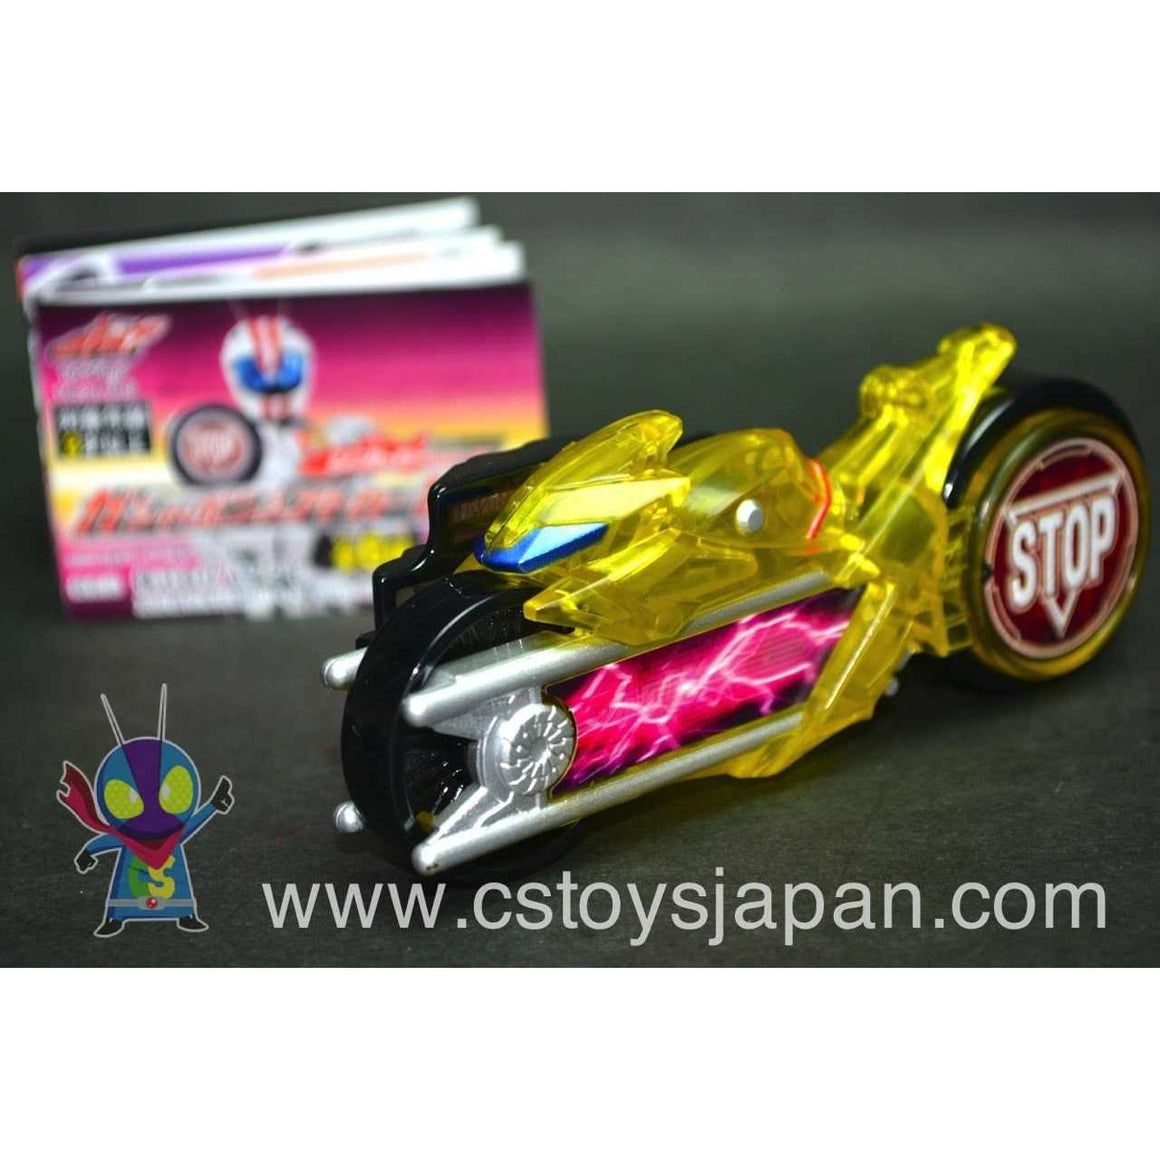 CSTOYS INTERNATIONAL:Capsule Toy Shift Car 10 01. Signal Tomarle